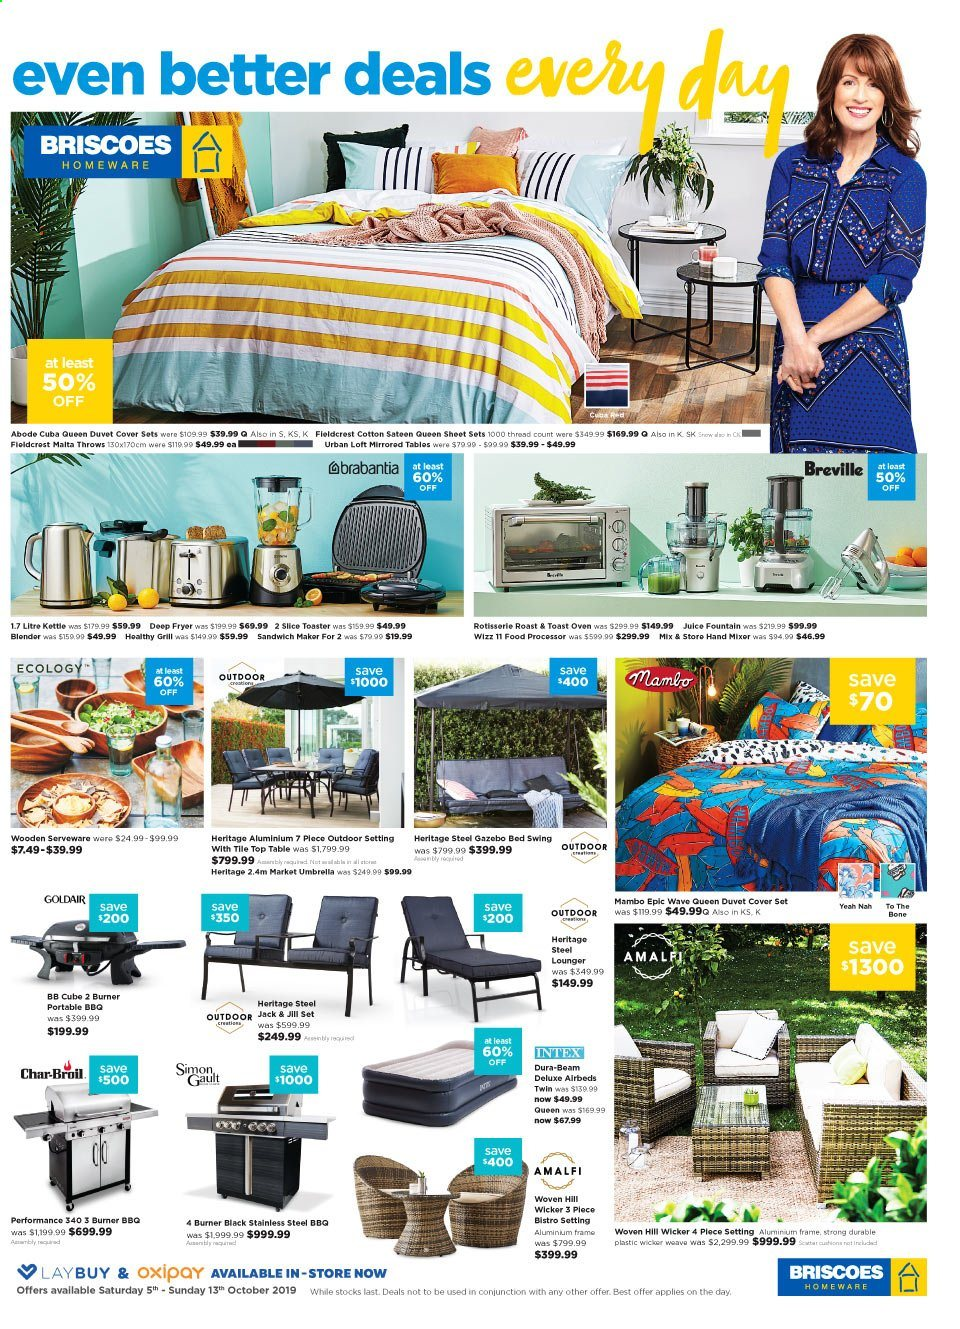 Briscoes mailer - 05.10.2019 - 13.10.2019 - Sales products - table, bed, serveware, duvet, sheet, queen sheet, satin, quilt cover set, oven, deep fryer, toaster, grill, juice, aluminium frame, Intex. Page 1.